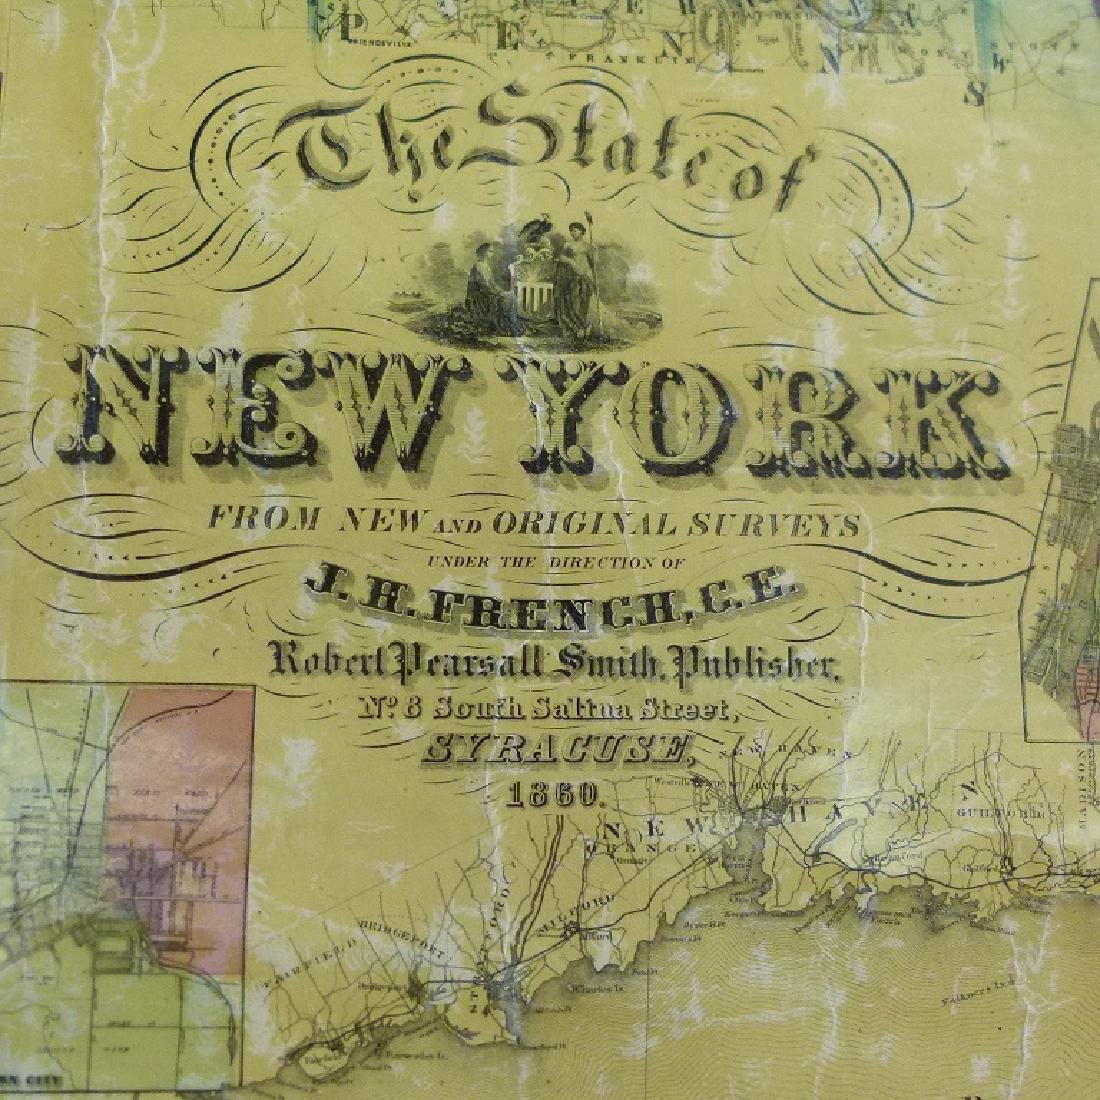 NEW YORK STATE MAP, J.H. FRENCH 1860